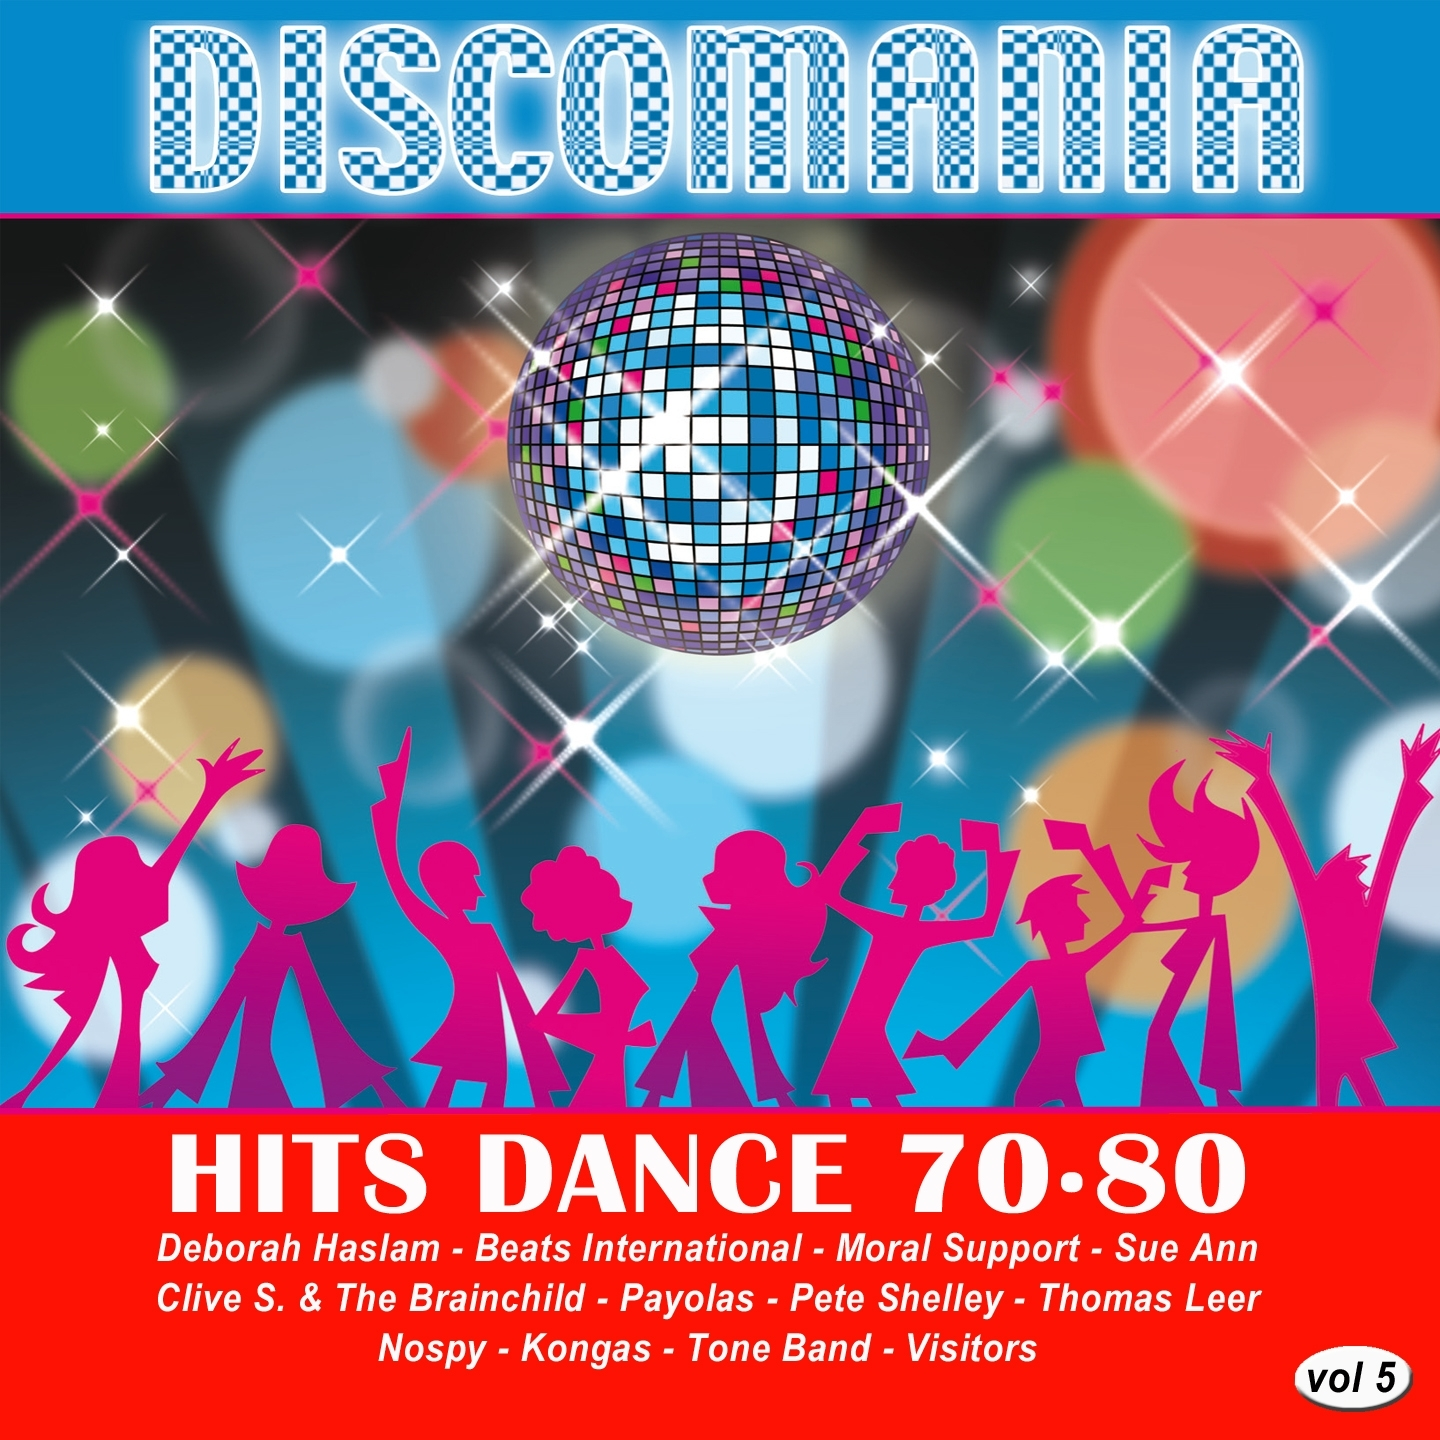 Discomania: Hits Dance 70-80, Vol. 5